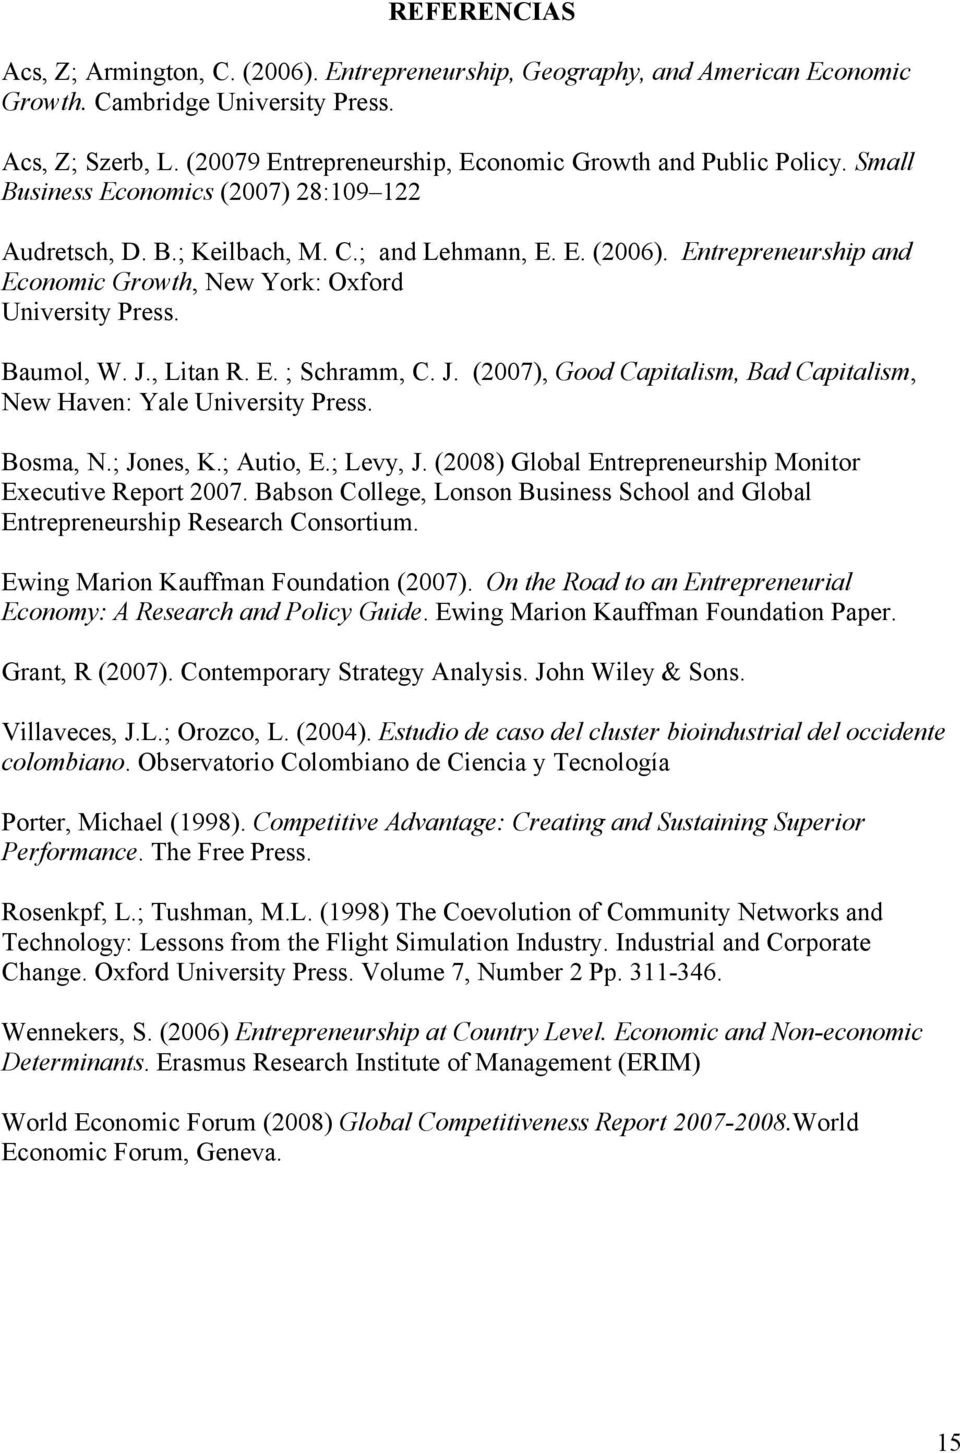 Entrepreneurship and Economic Growth, New York: Oxford University Press. Baumol, W. J., Litan R. E. ; Schramm, C. J. (2007), Good Capitalism, Bad Capitalism, New Haven: Yale University Press.